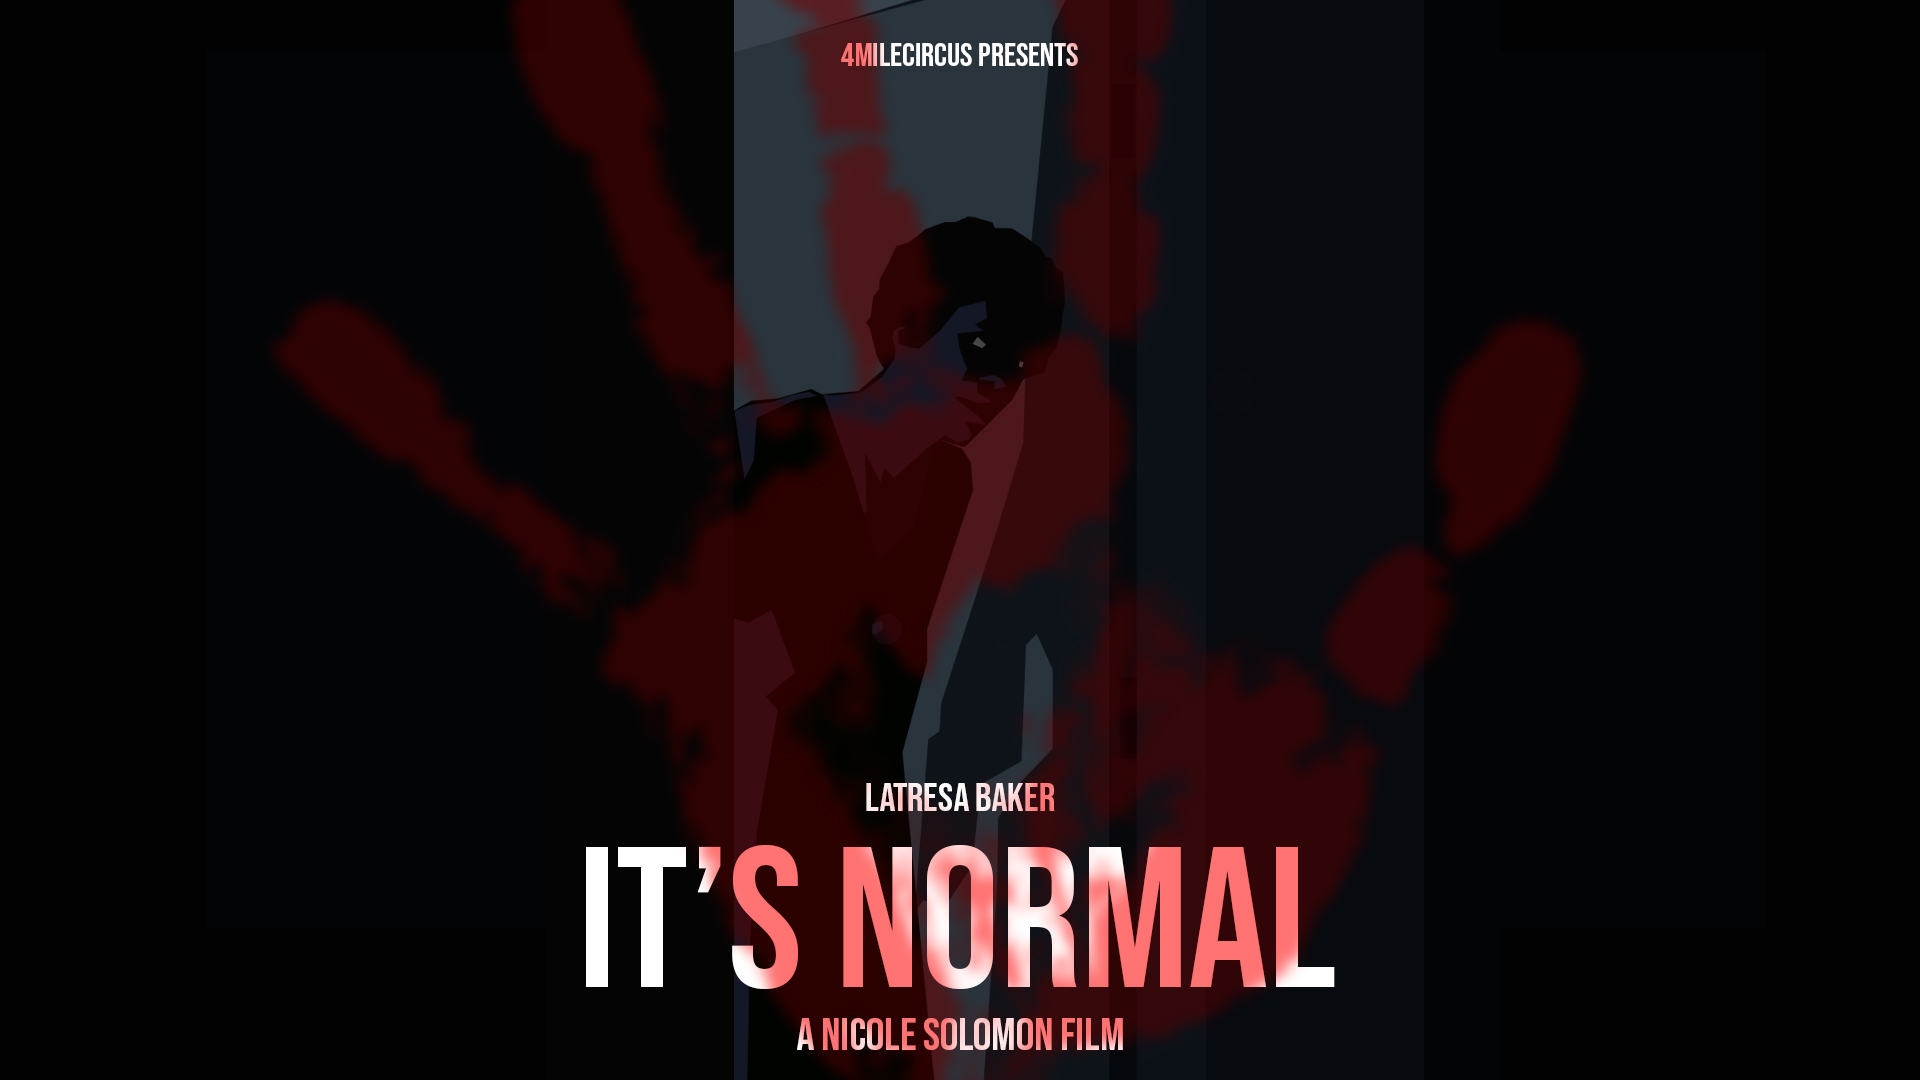 Poster for It's Normal starring Latresa Baker, directed by Nicole Solomon